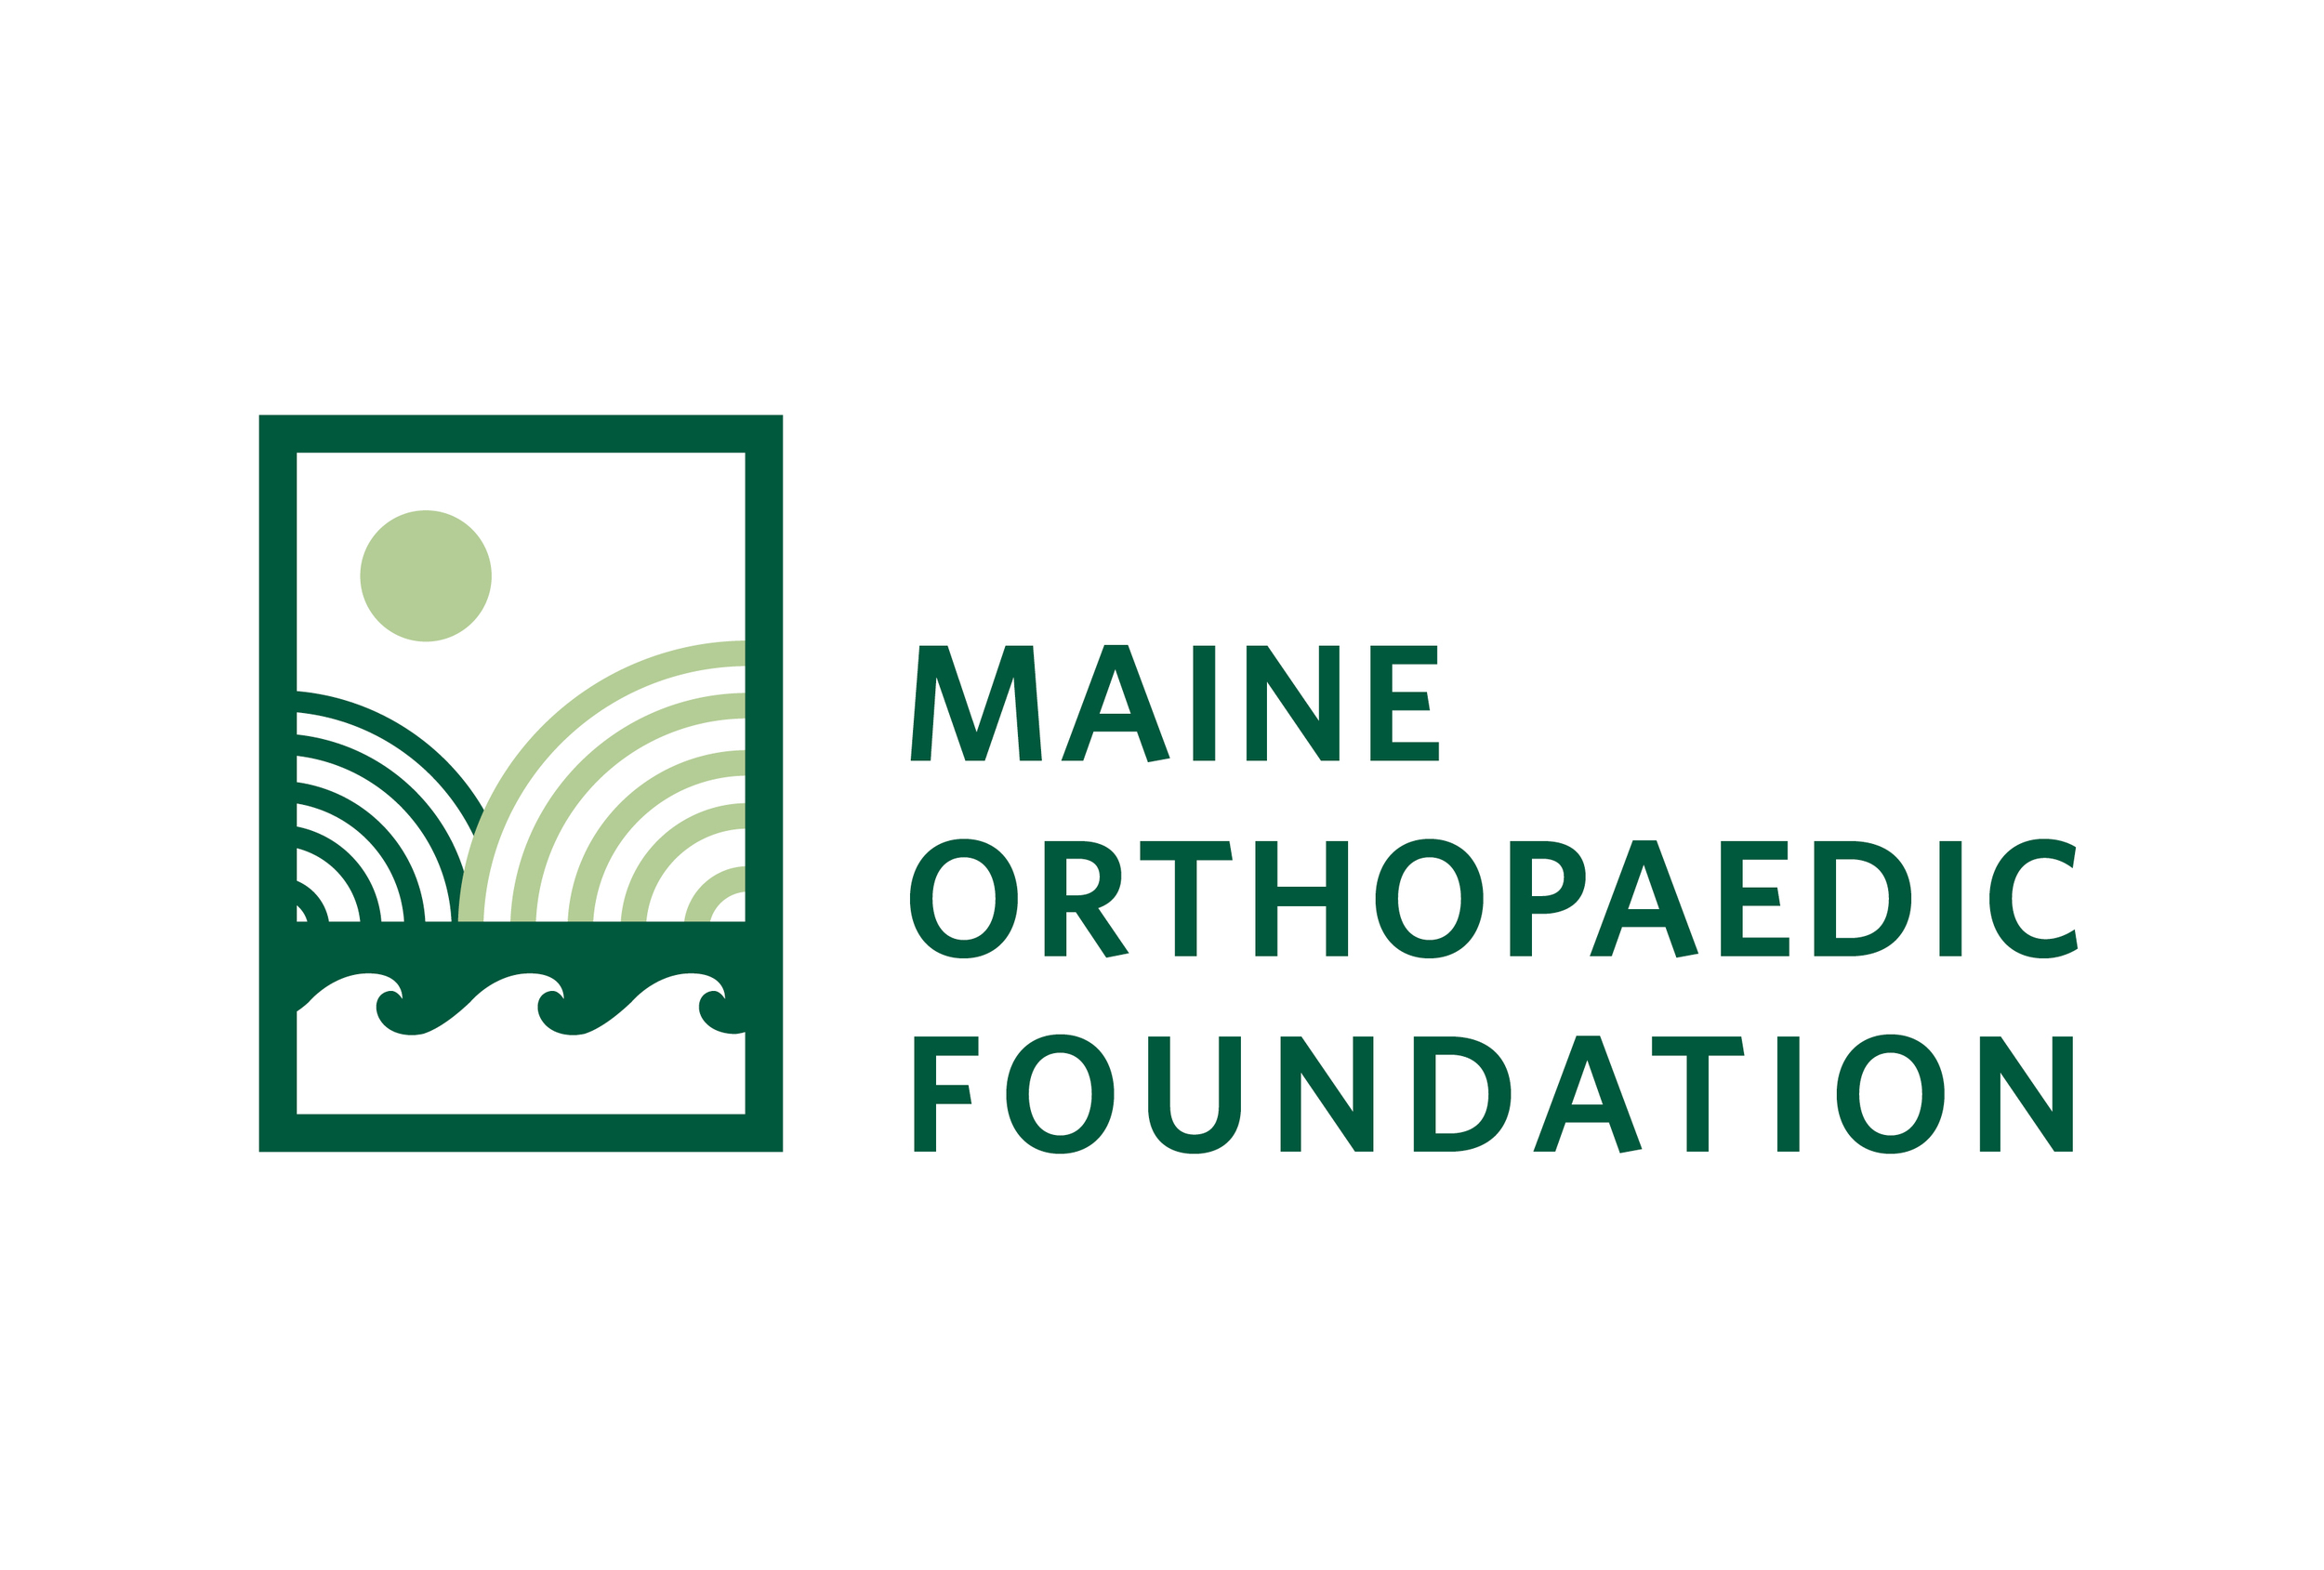 Maine Orthopaedic Foundation